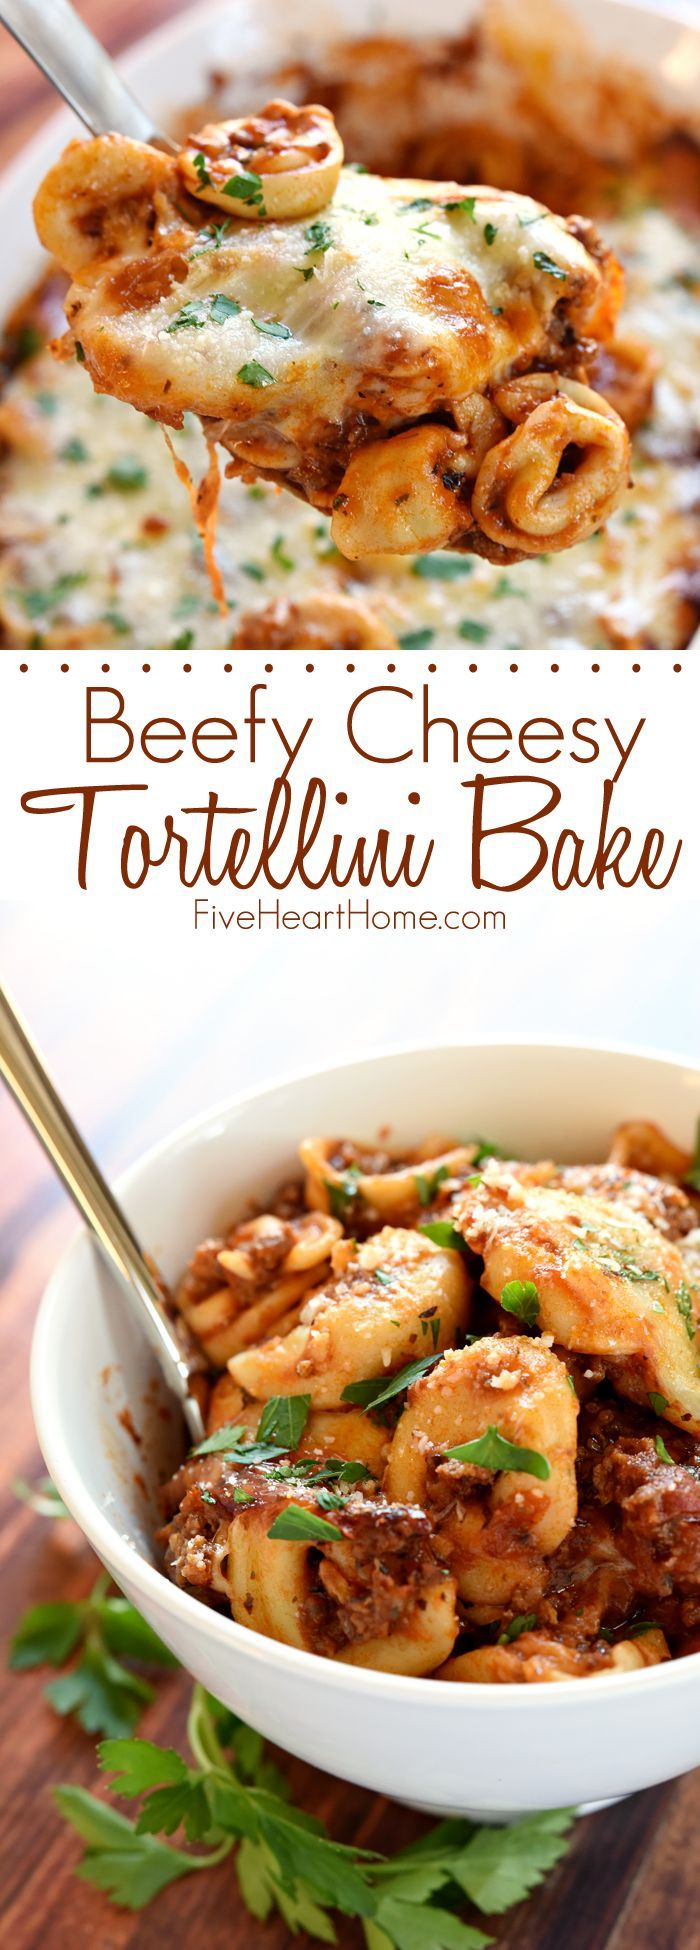 Beefy Cheesy Tortellini Bake ~ loaded with tortellini, marinara sauce, and mozzarella cheese, this effortless pasta dinner is one that the whole family will love! | FiveHeartHome.com